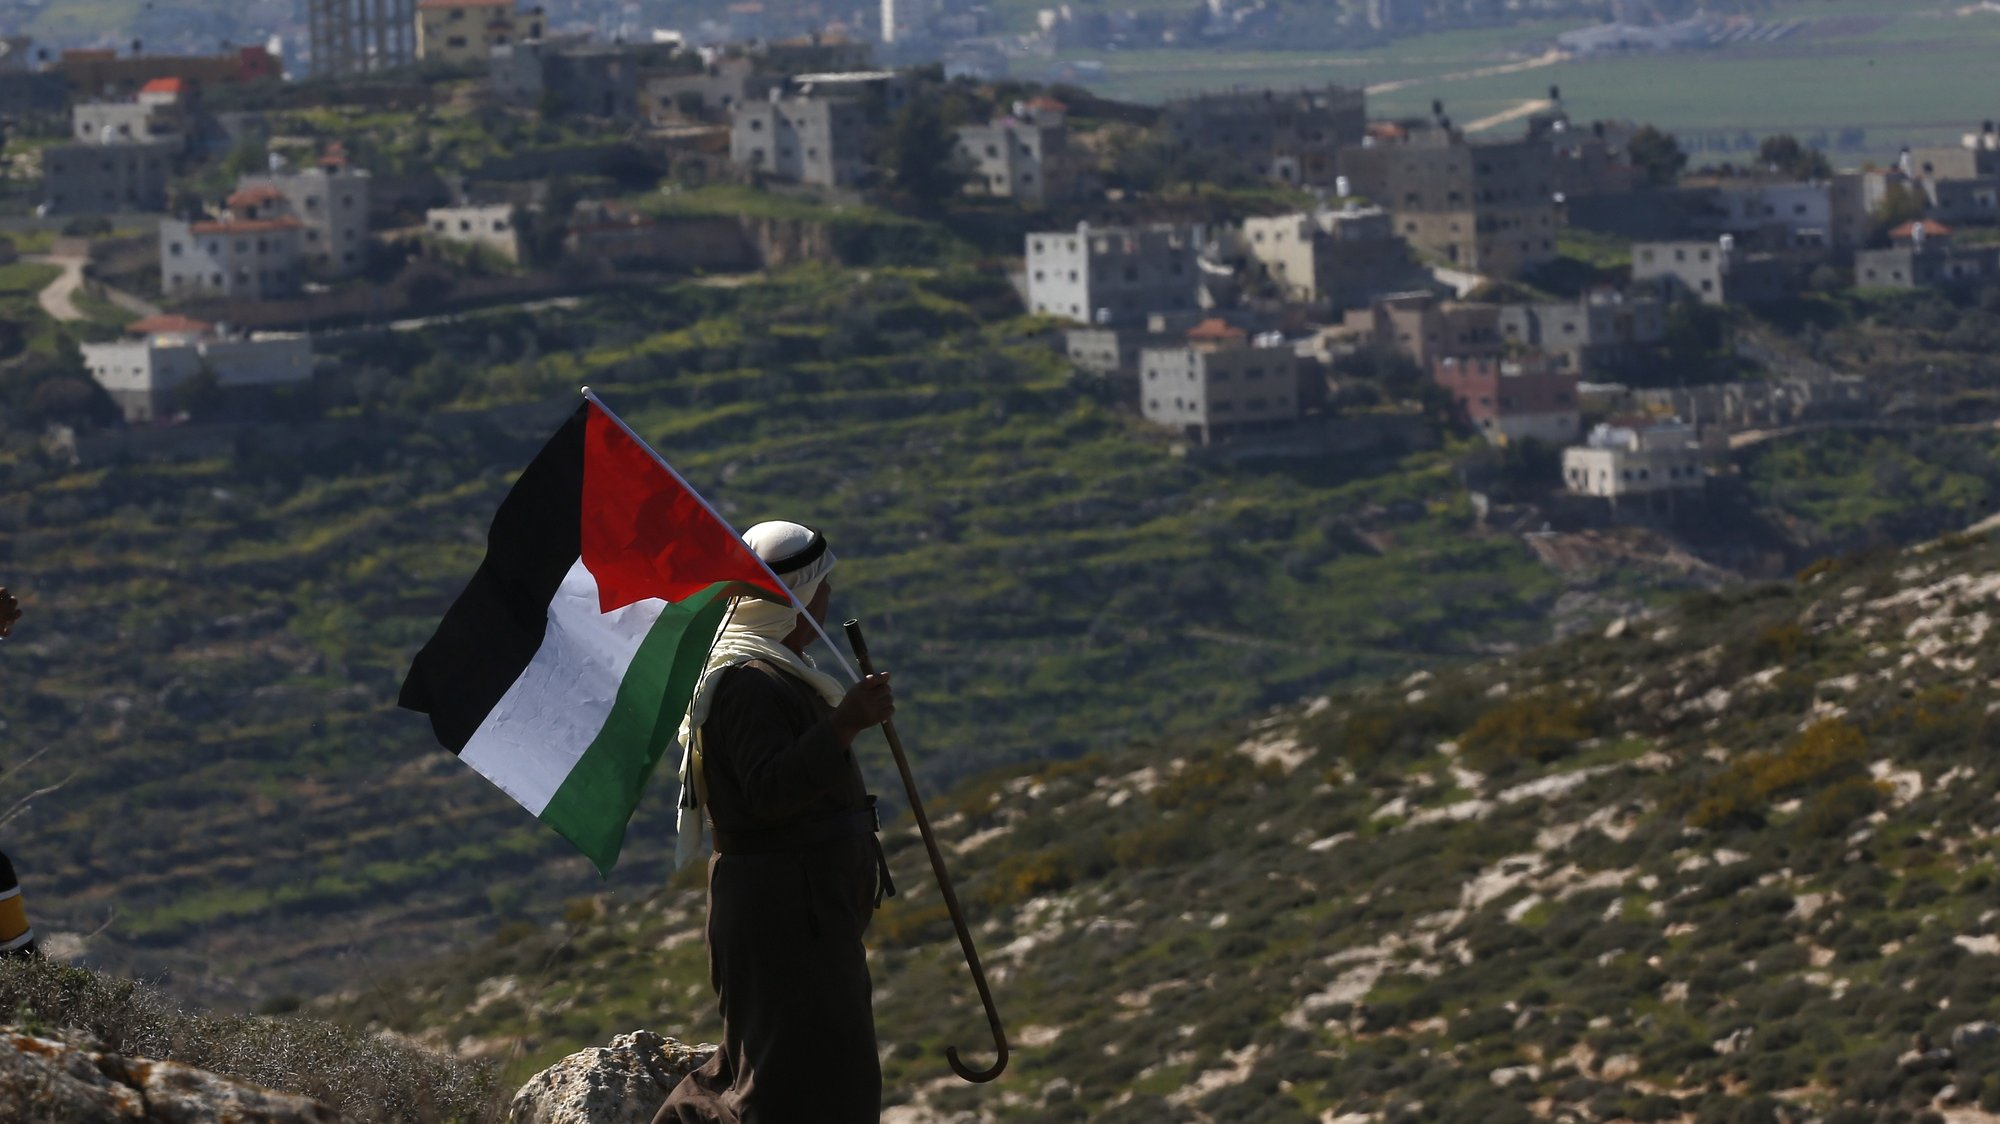 epa09038334 A Palestinian man waves Palestine flag during a demonstration against Israel's settlements in the village of Bet Dajan near the northern West Bank city of Nablus, 26 February 2021.  EPA/ALAA BADARNEH